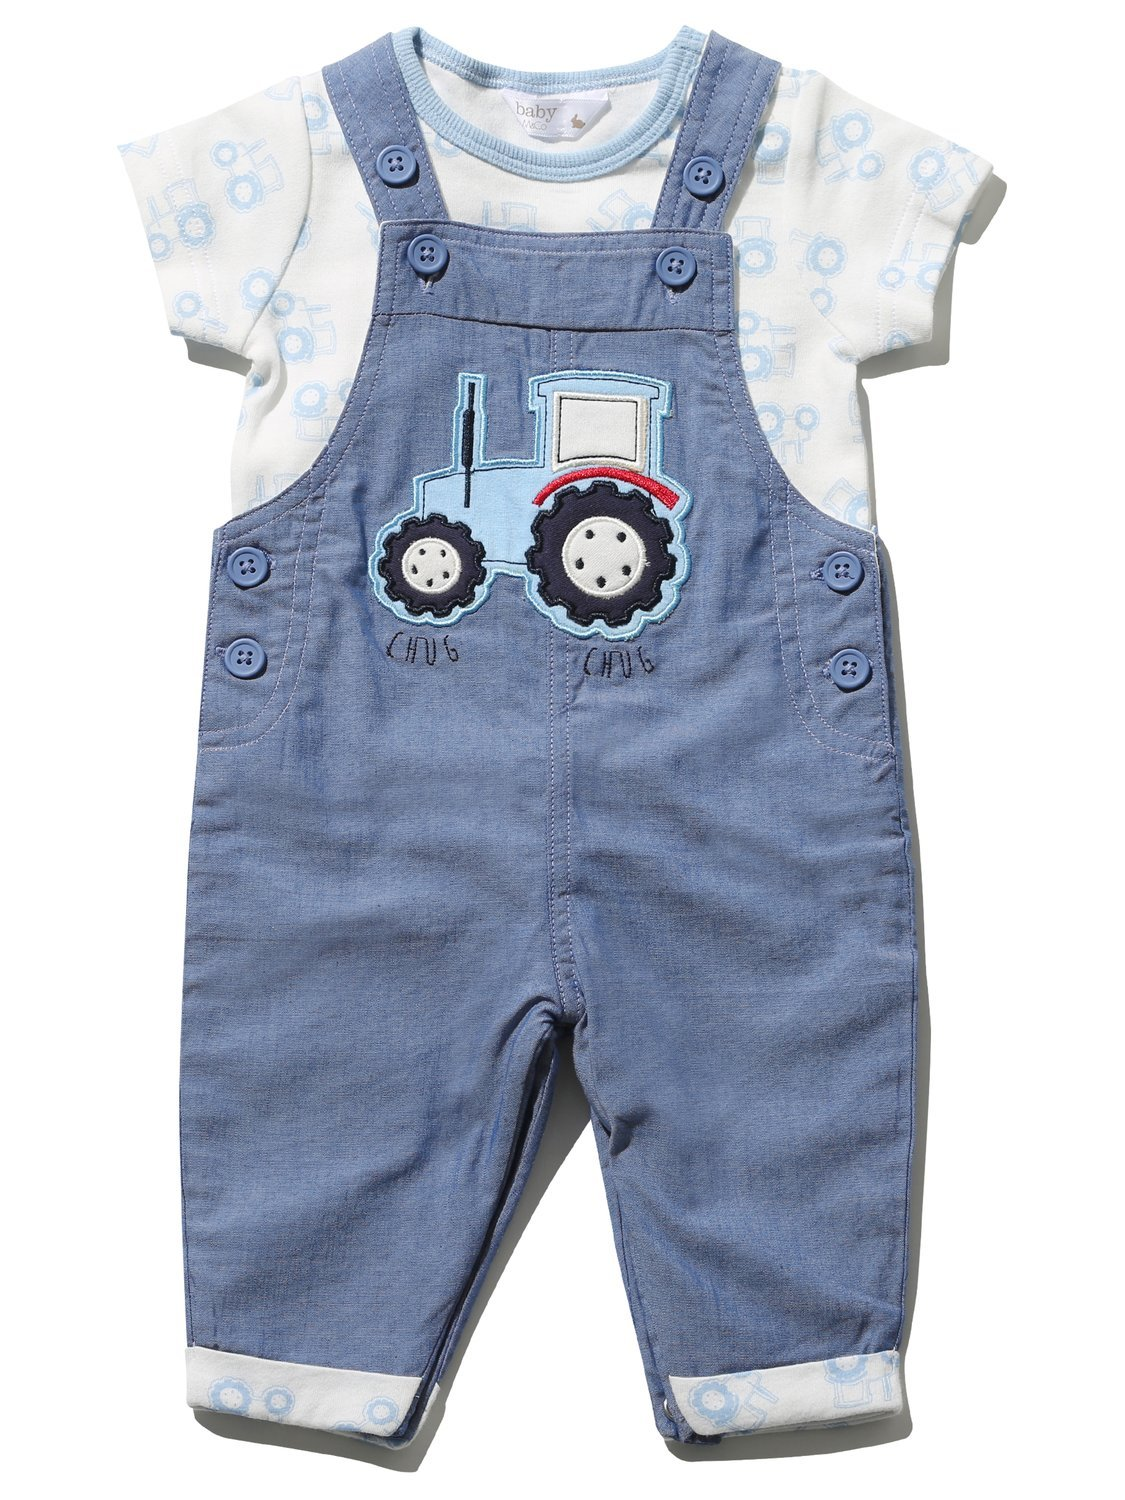 M&Co Baby Boy Blue Chambray Tractor Applique Dungarees Short Sleeve Print T-Shirt Set